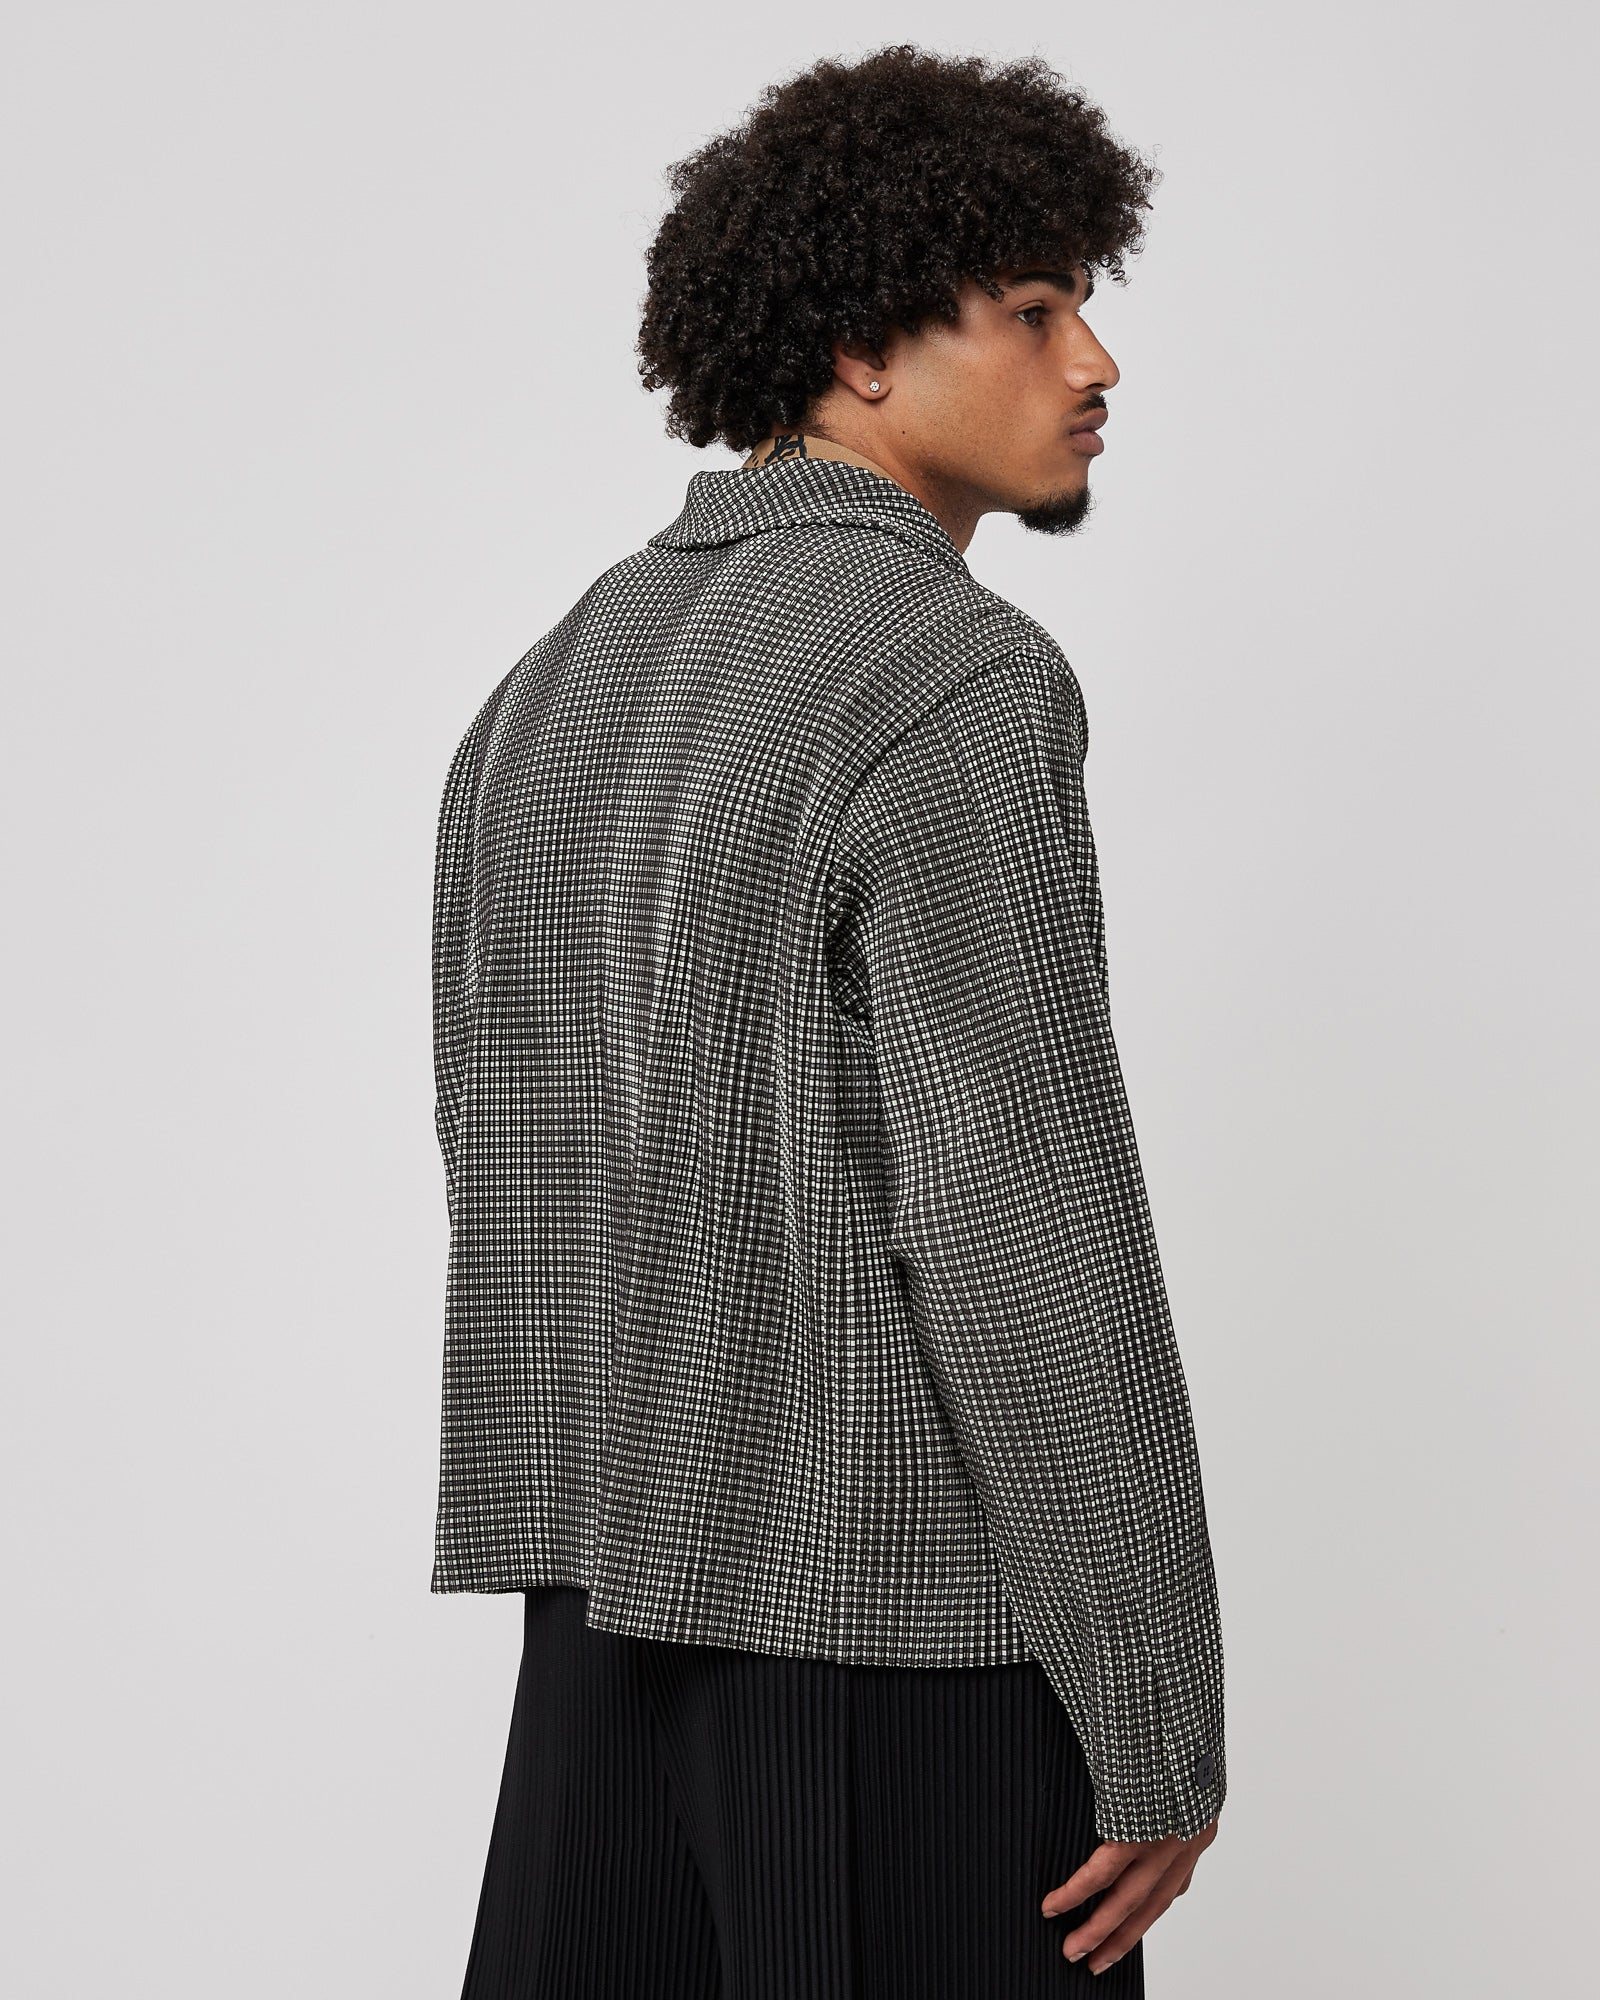 Notched Lapel Jacket in Gray Check